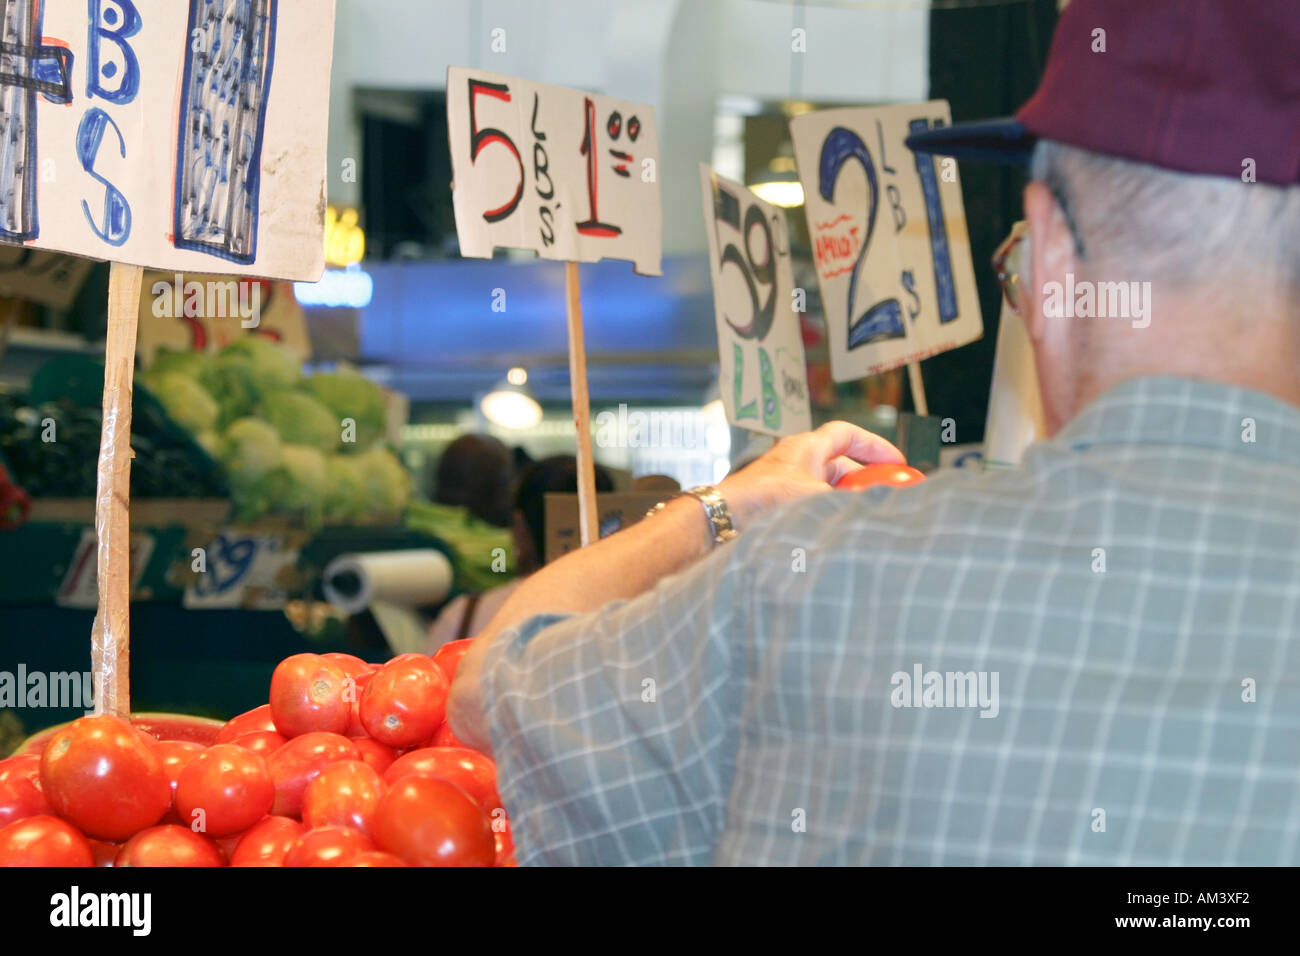 Man looking at vegetables Stock Photo